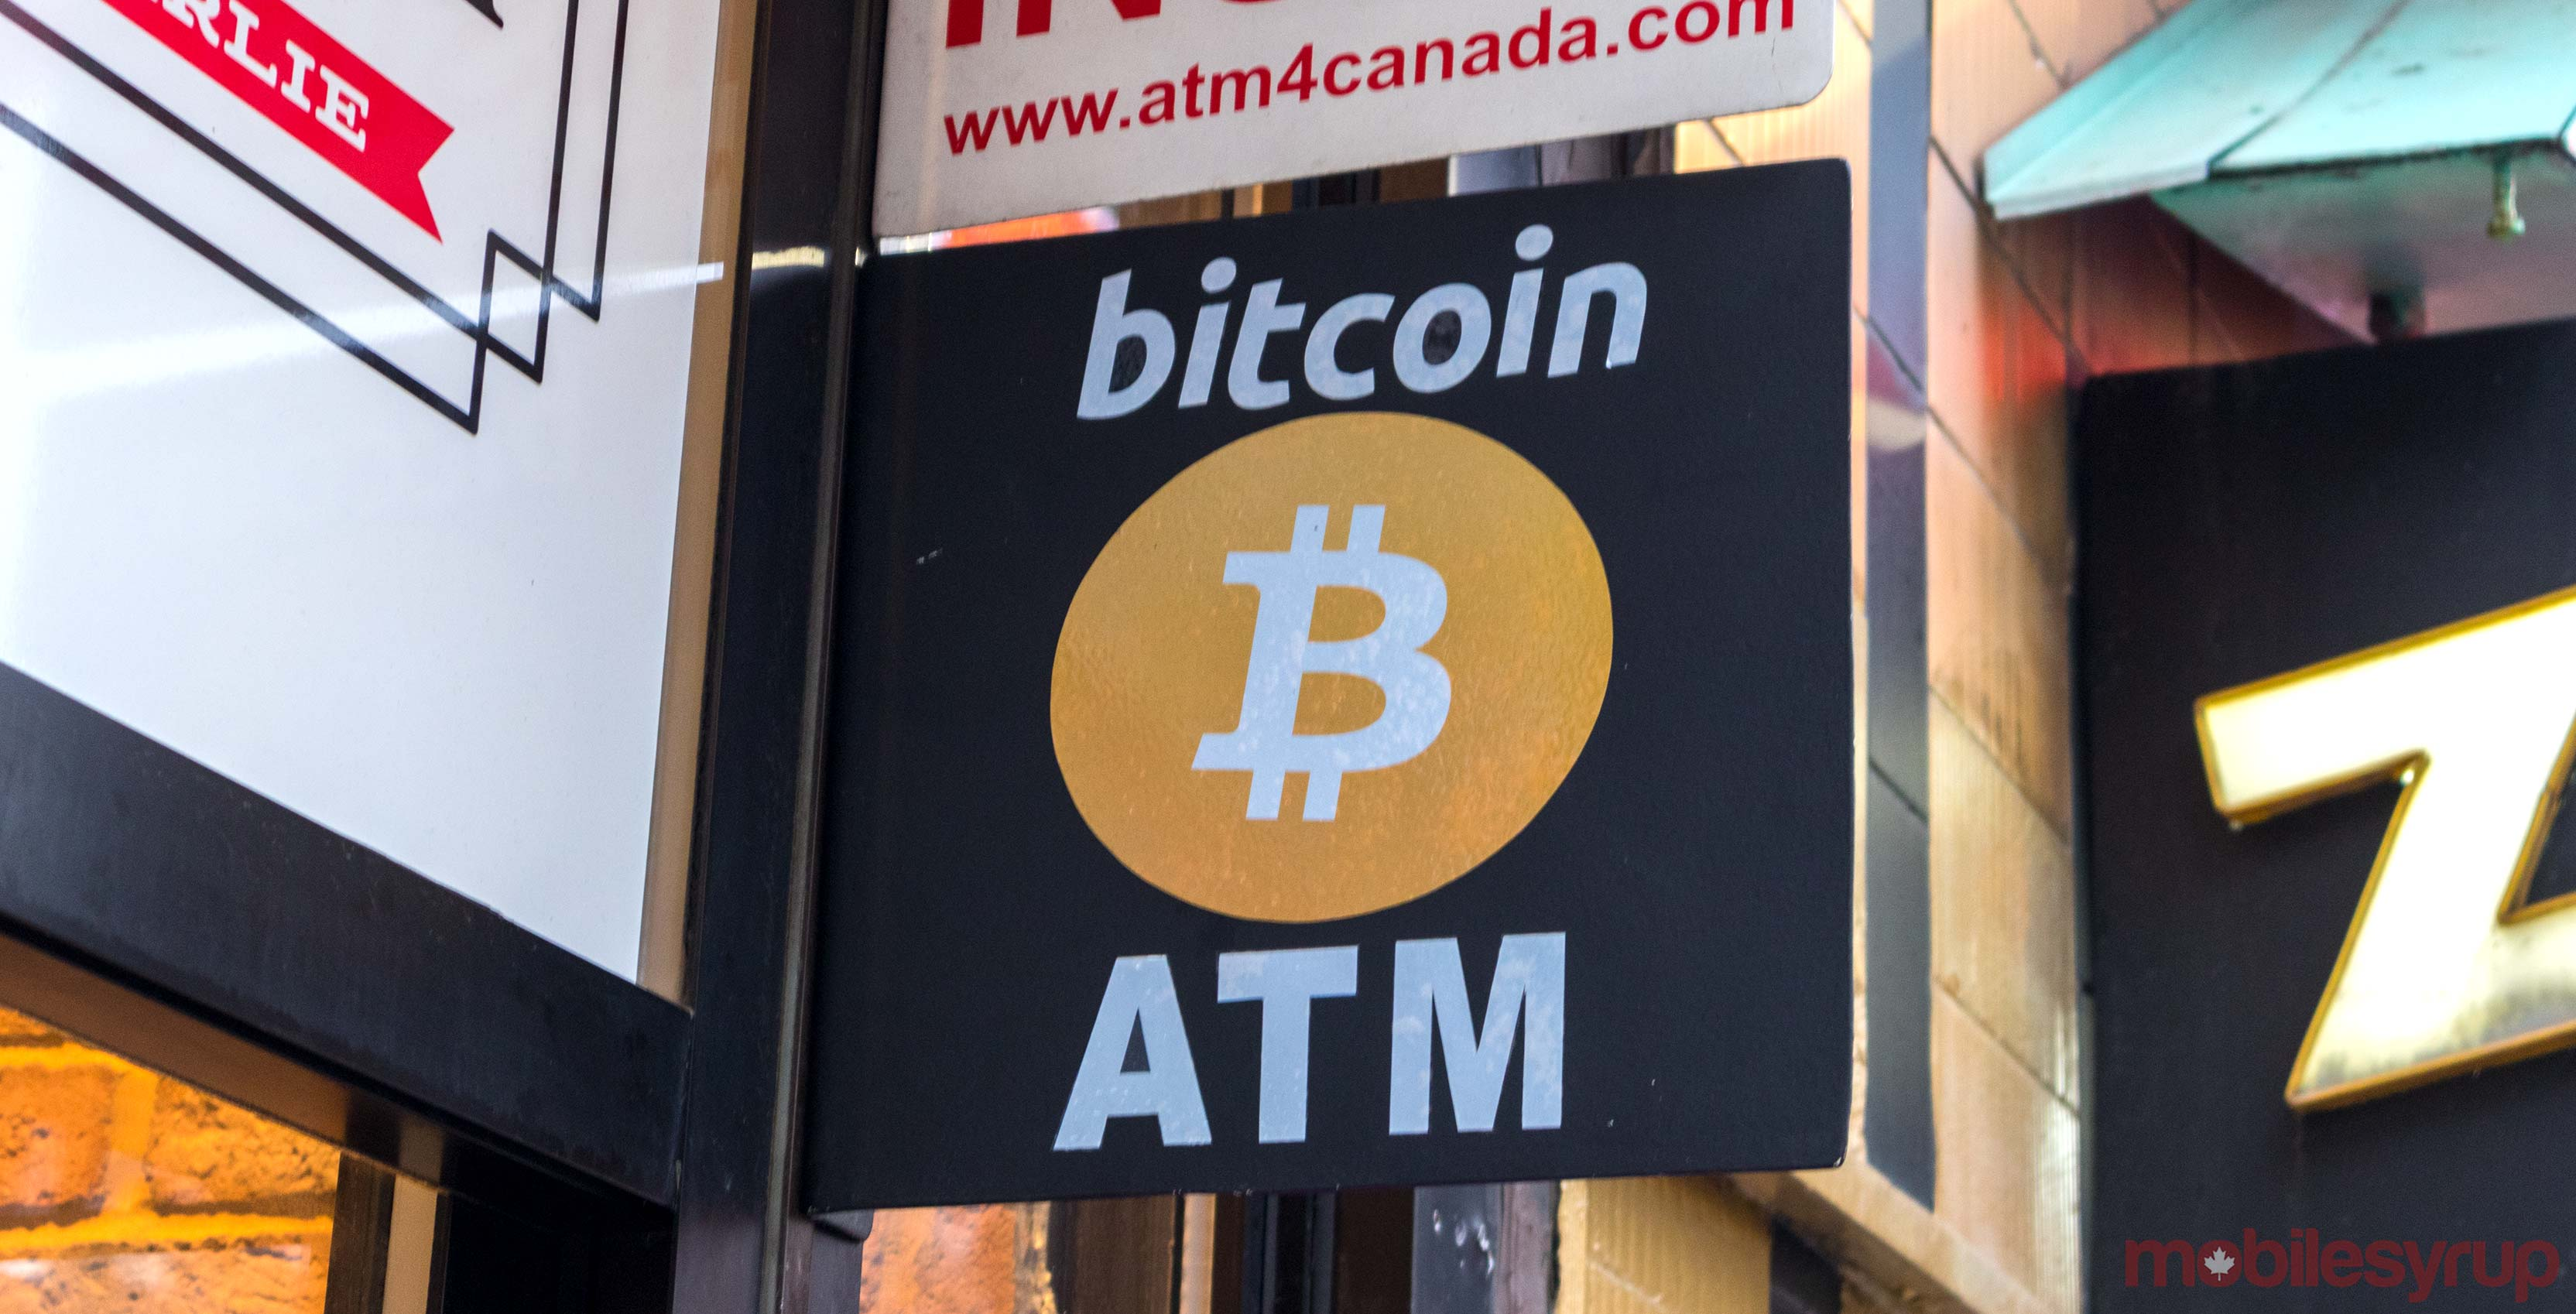 Bitcoin And Cryptocurrency Exchange Quadriga The Largest Crypto In Canada Has Said It S Lost Access To Millions Of Dollars Worth